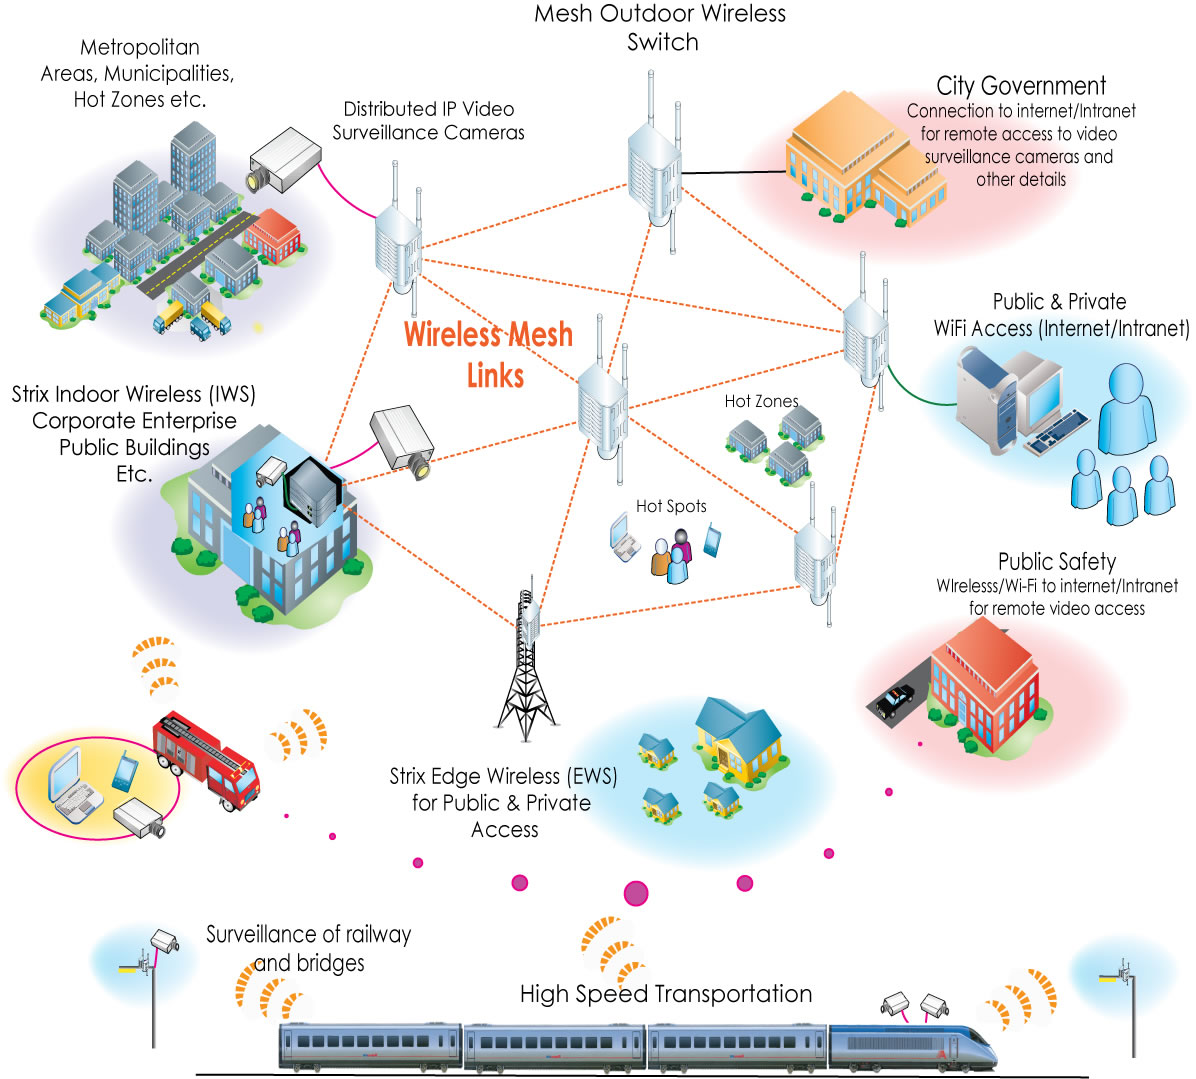 StrixWirelessIllustration wireless mesh networks for metropolitan, city and country wide